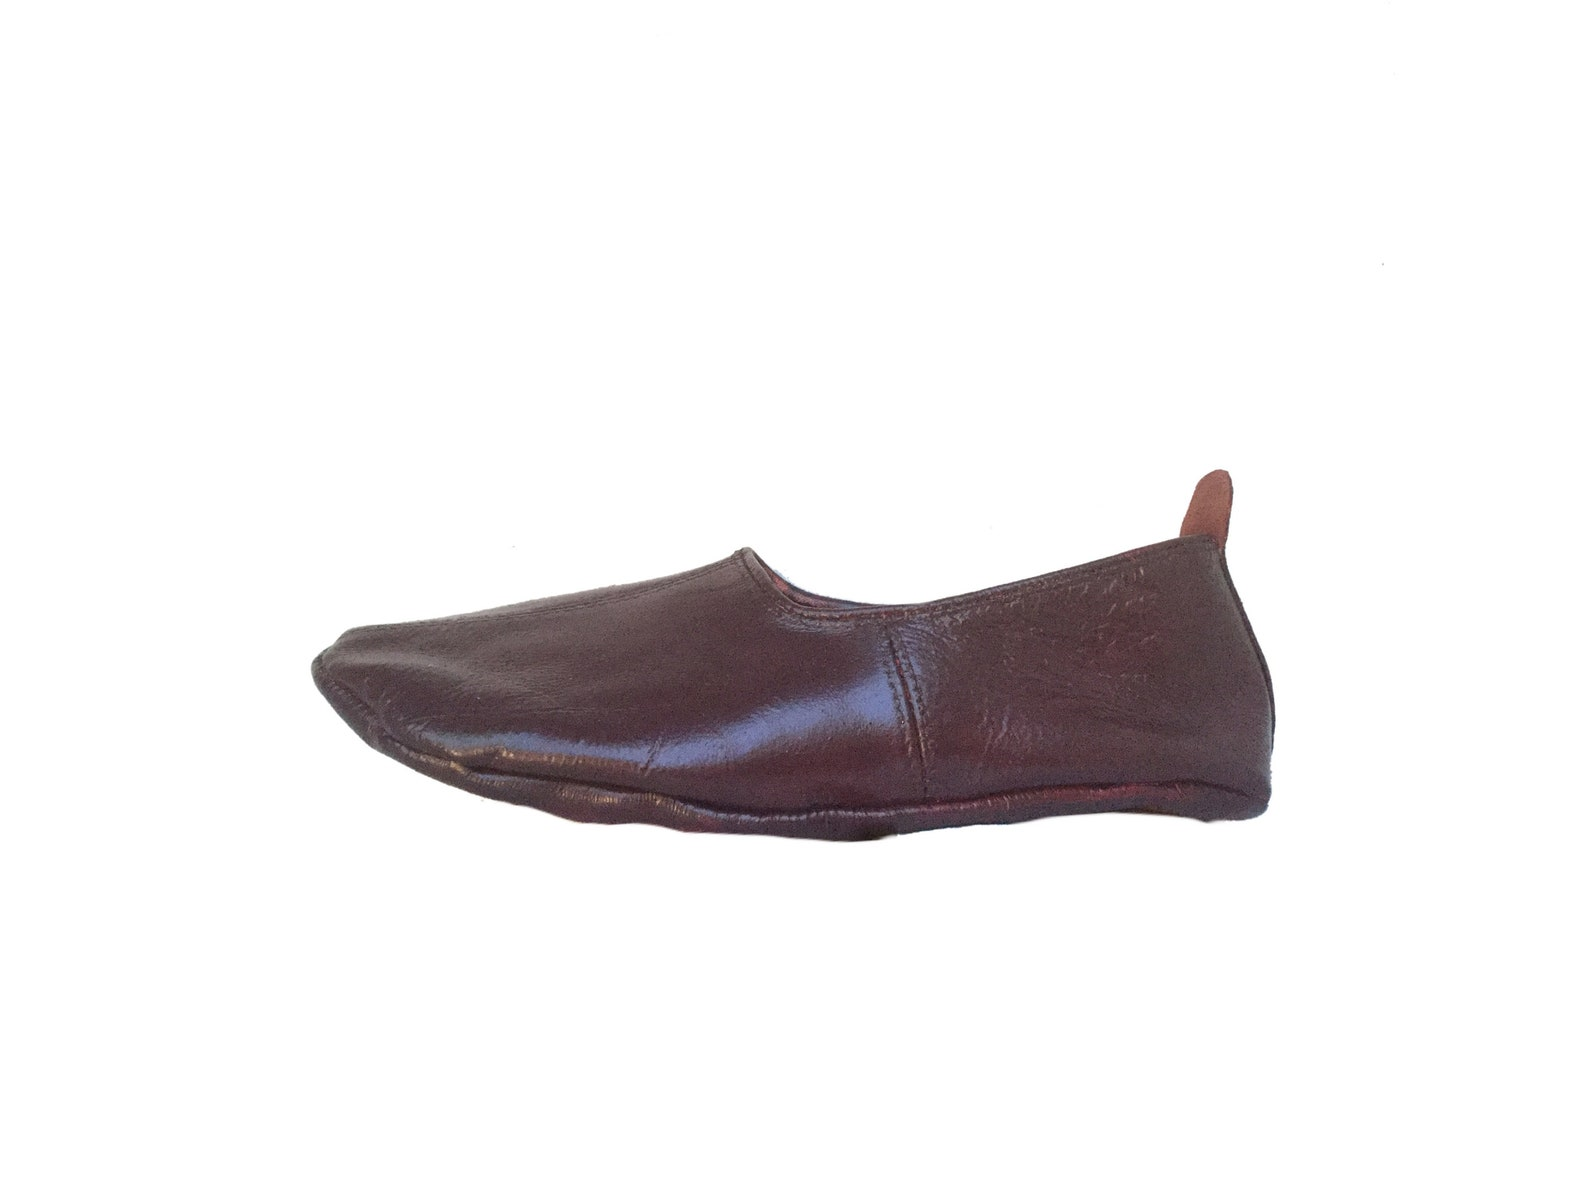 ballet flats,tabi shoes, leather slippers,barefoot shoes, glove shoes,travel shoes,earthing shoes